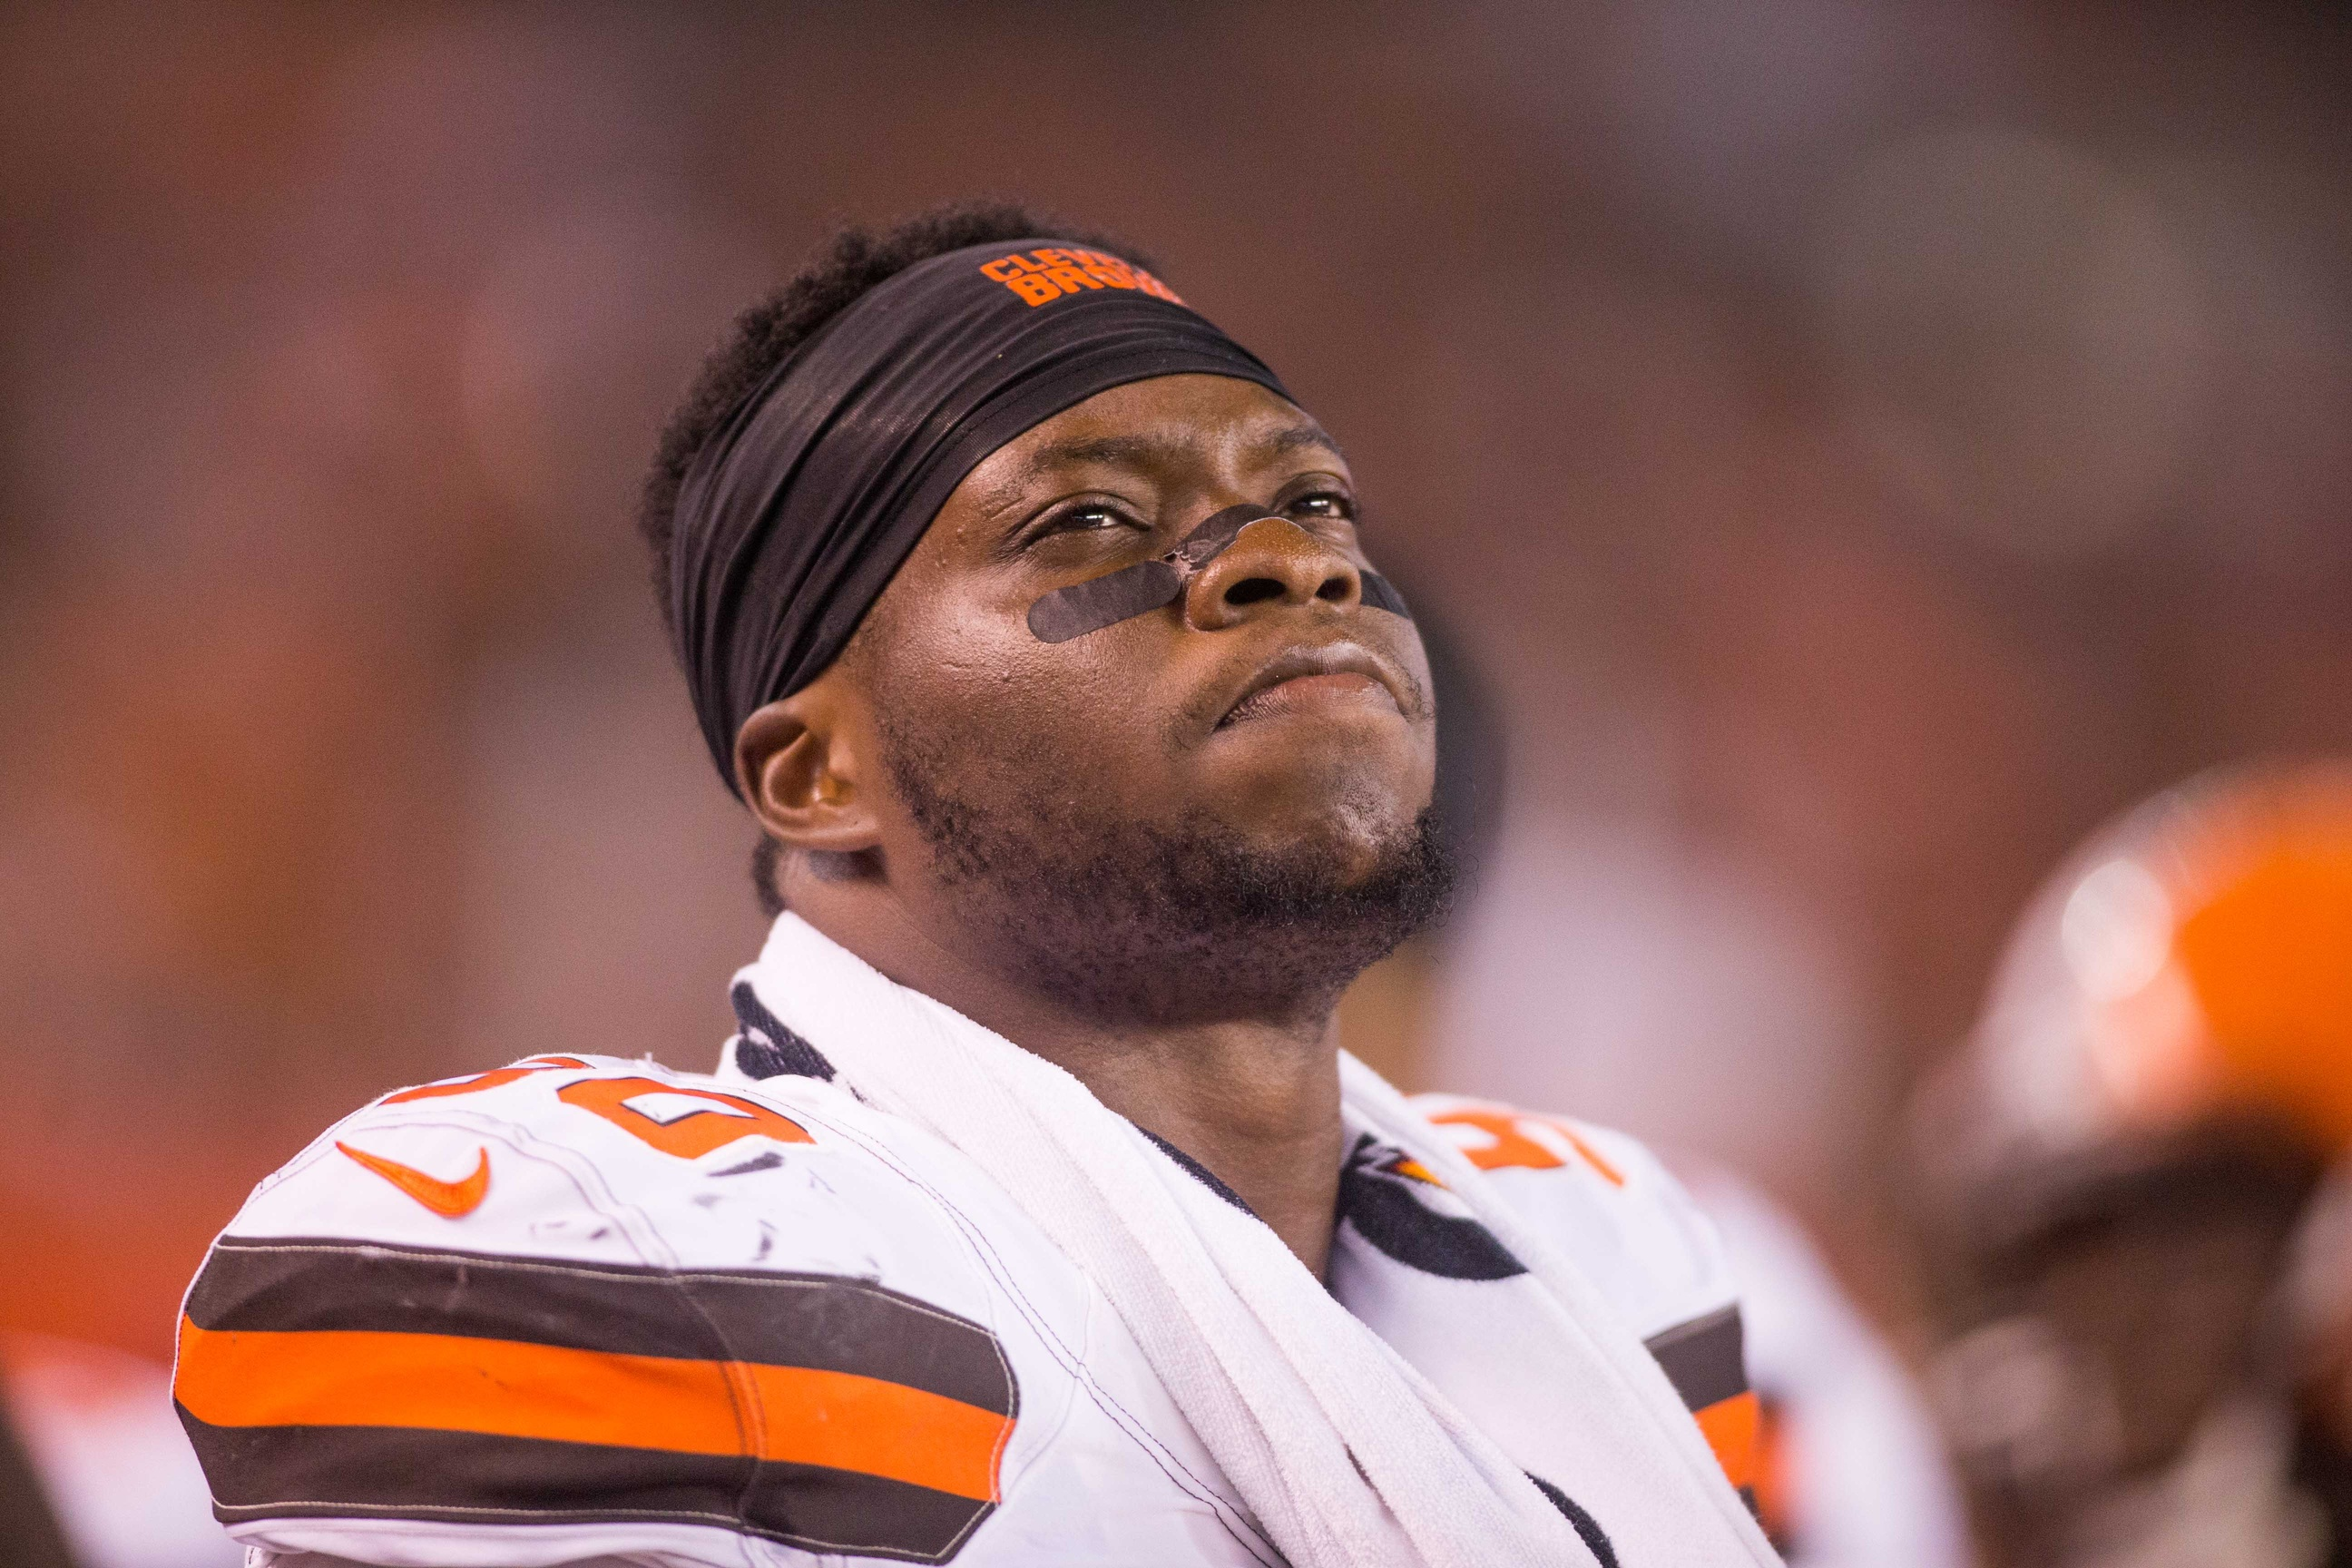 Emmanuel Ogbah: NFL Roundup: Emmanuel Ogbah's Production Hidden In